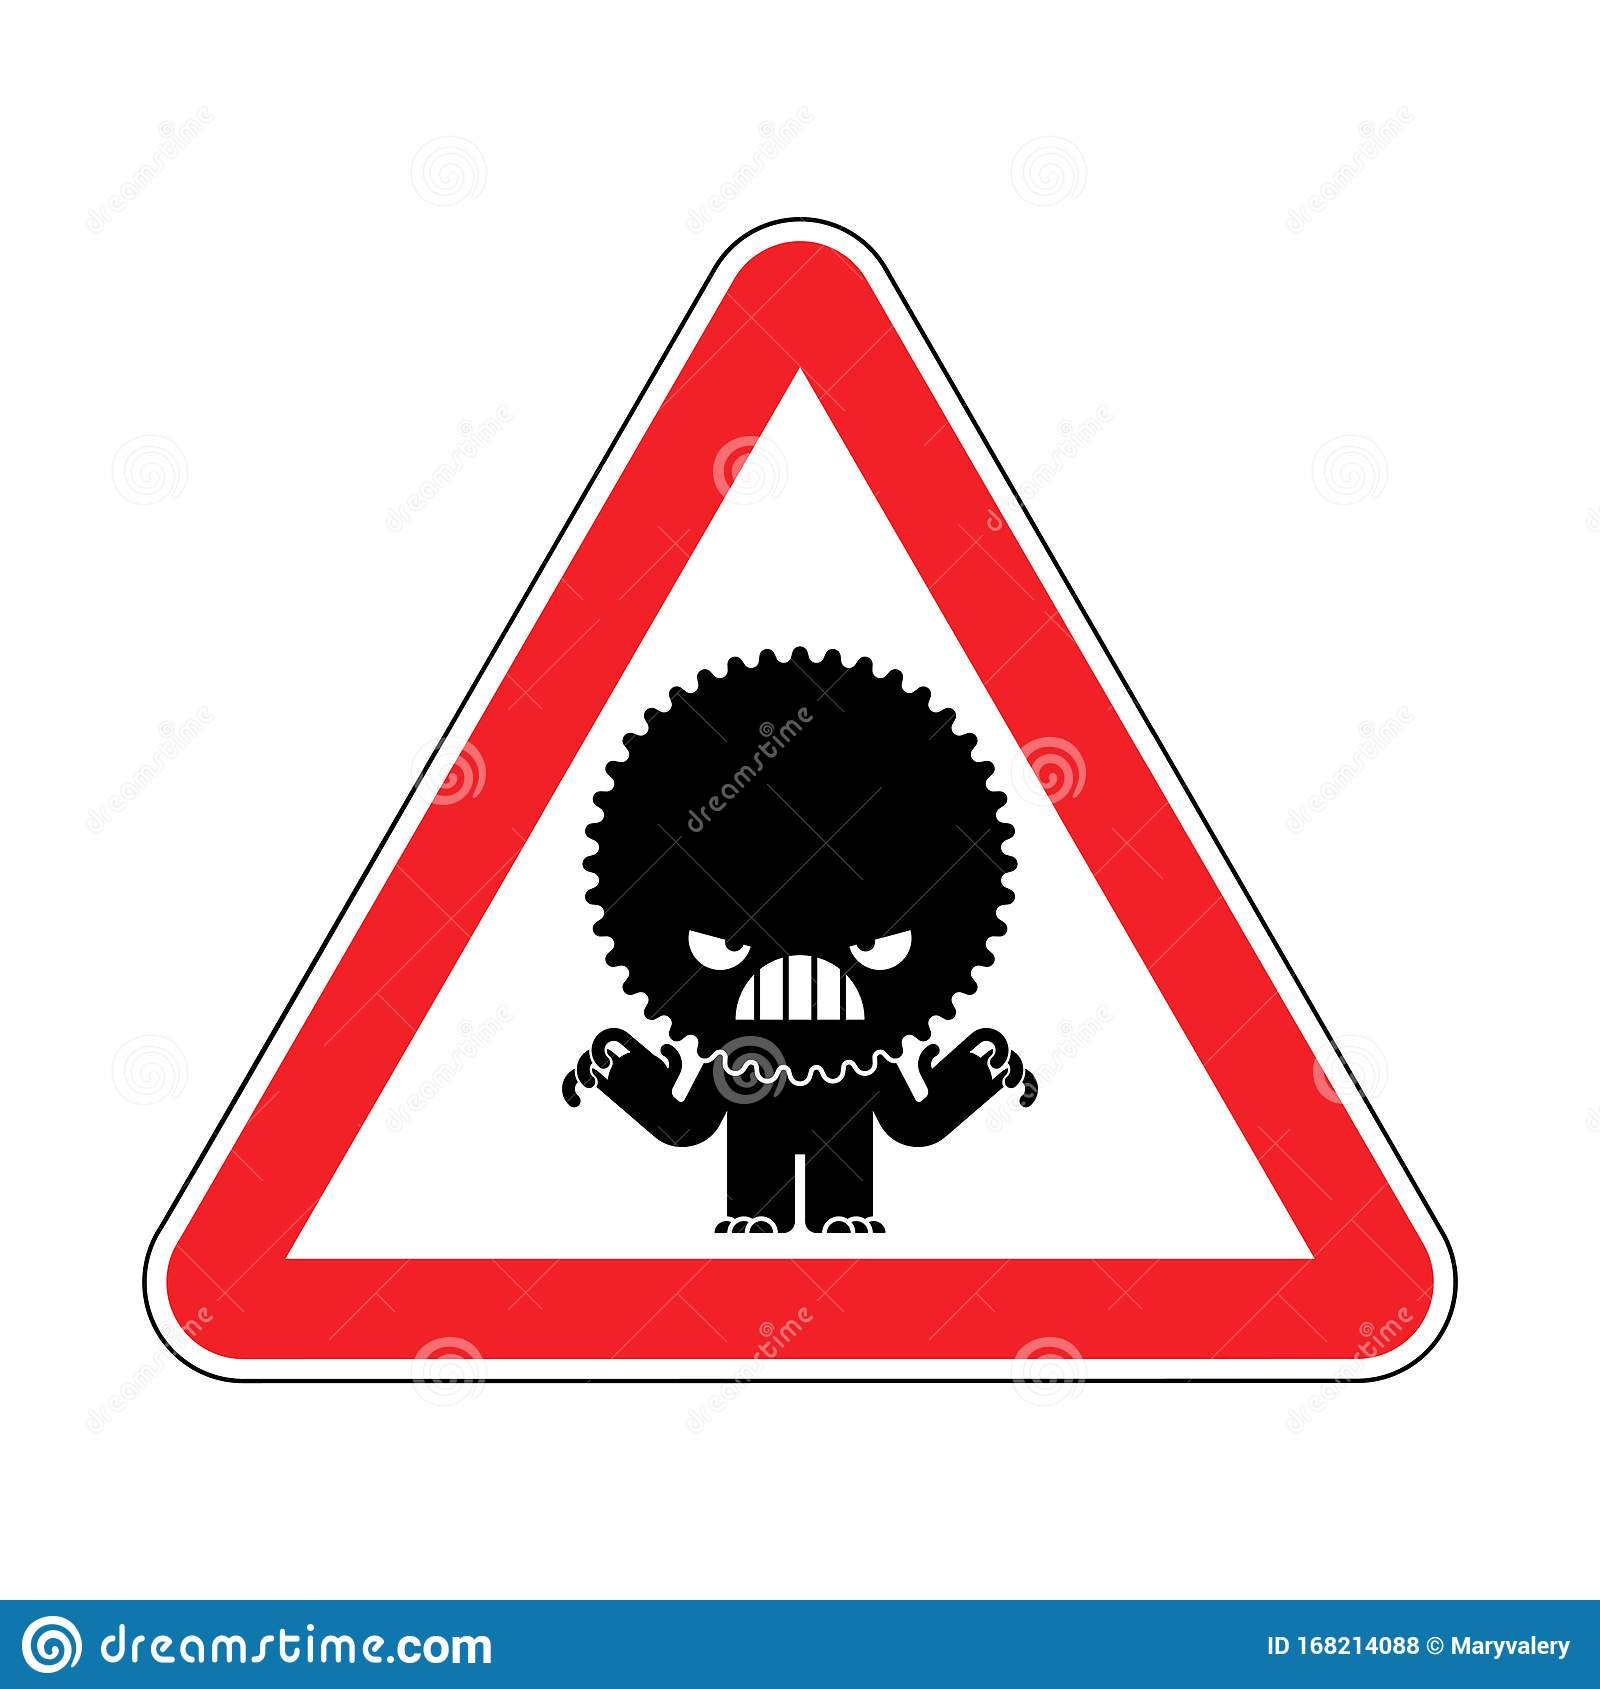 Attention Stress Warning Red Road Sign Caution Hatred